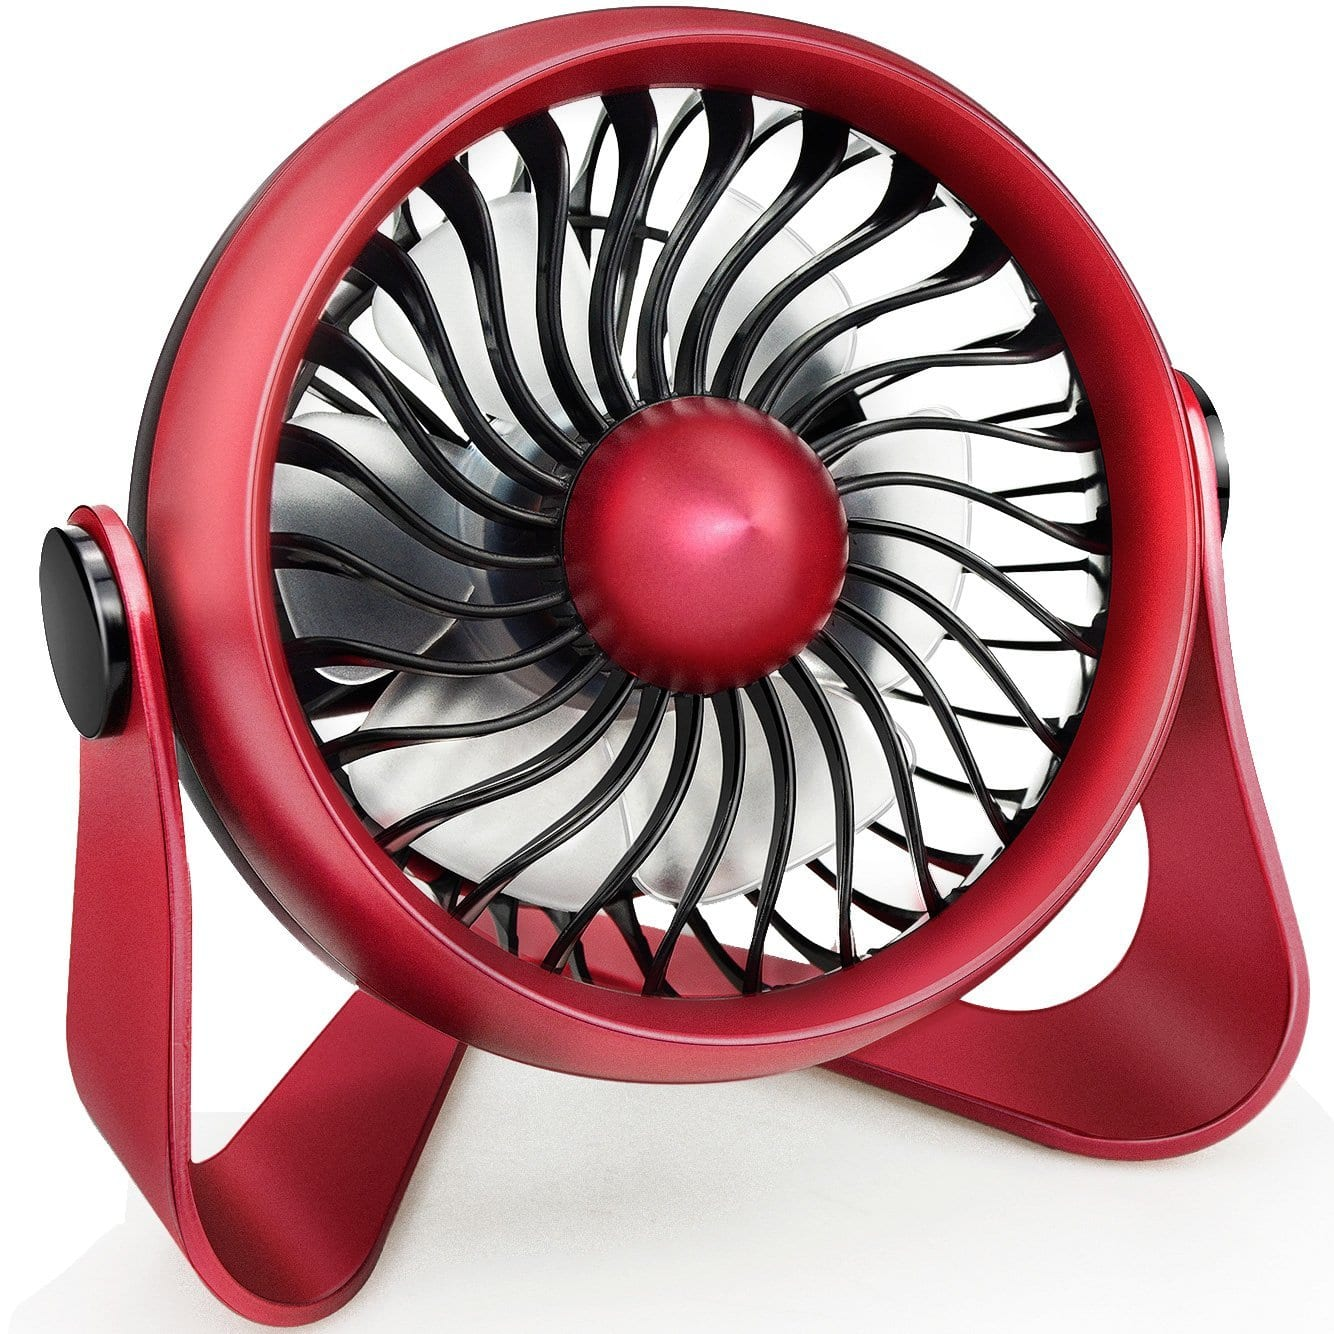 WIOR Quieter Desktop Fan, Aromatherapy Essential Oil Fan to Blow Fragrant Wind, Portable Mini Personal Fan with 4 Speeds Office Desk Powered by USB or Rechargeable Battery $10.49